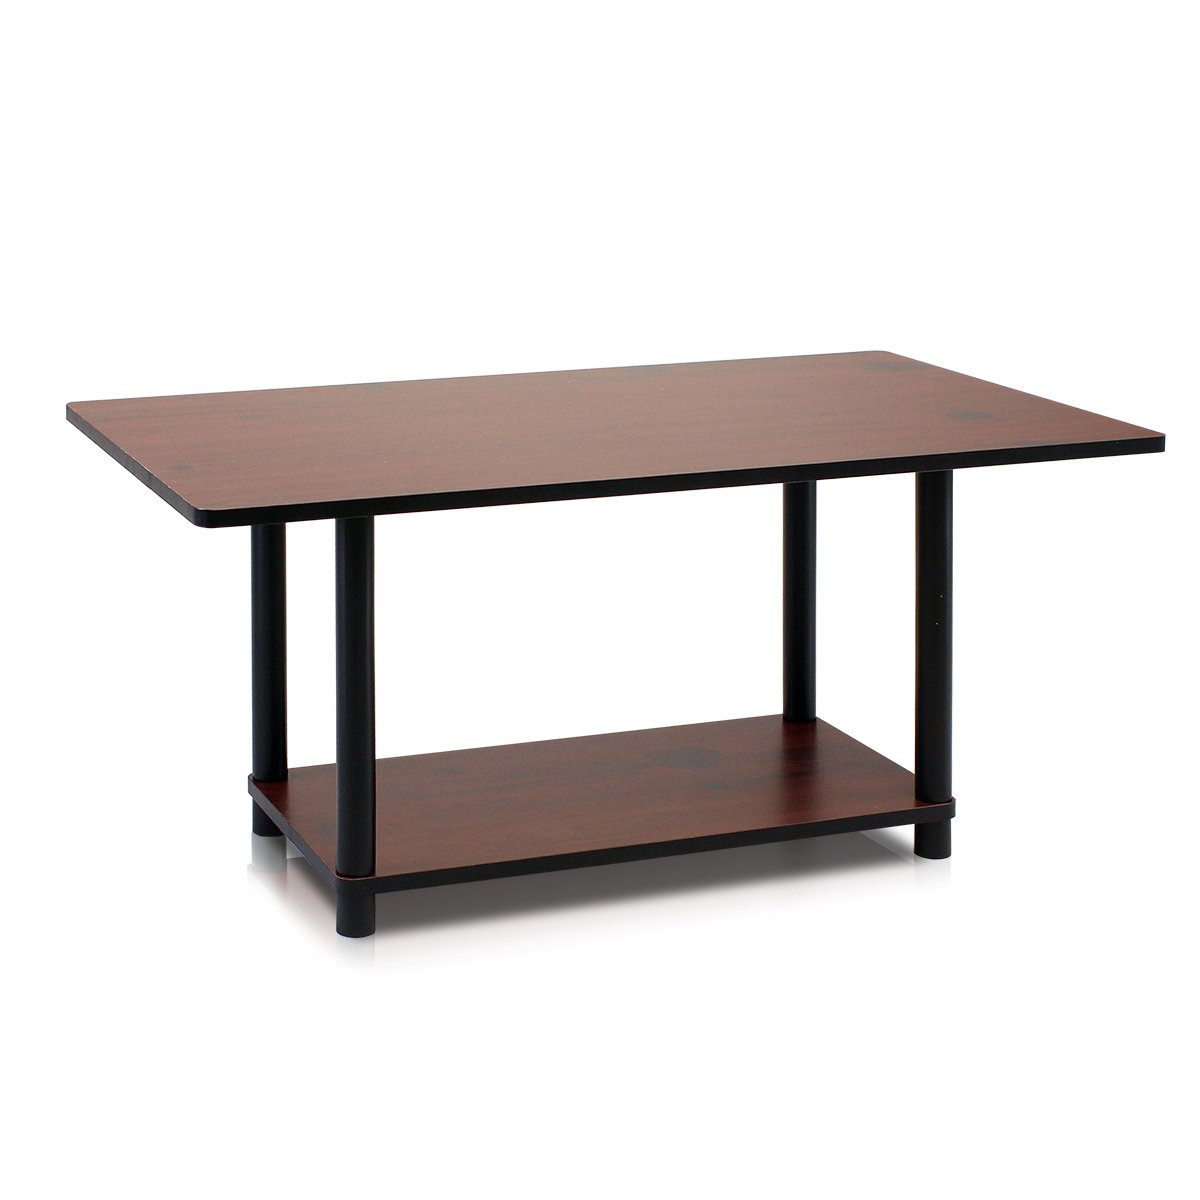 Furinno Turn-N-Tube Coffee Table, Dark Cherry/Black by Furinno